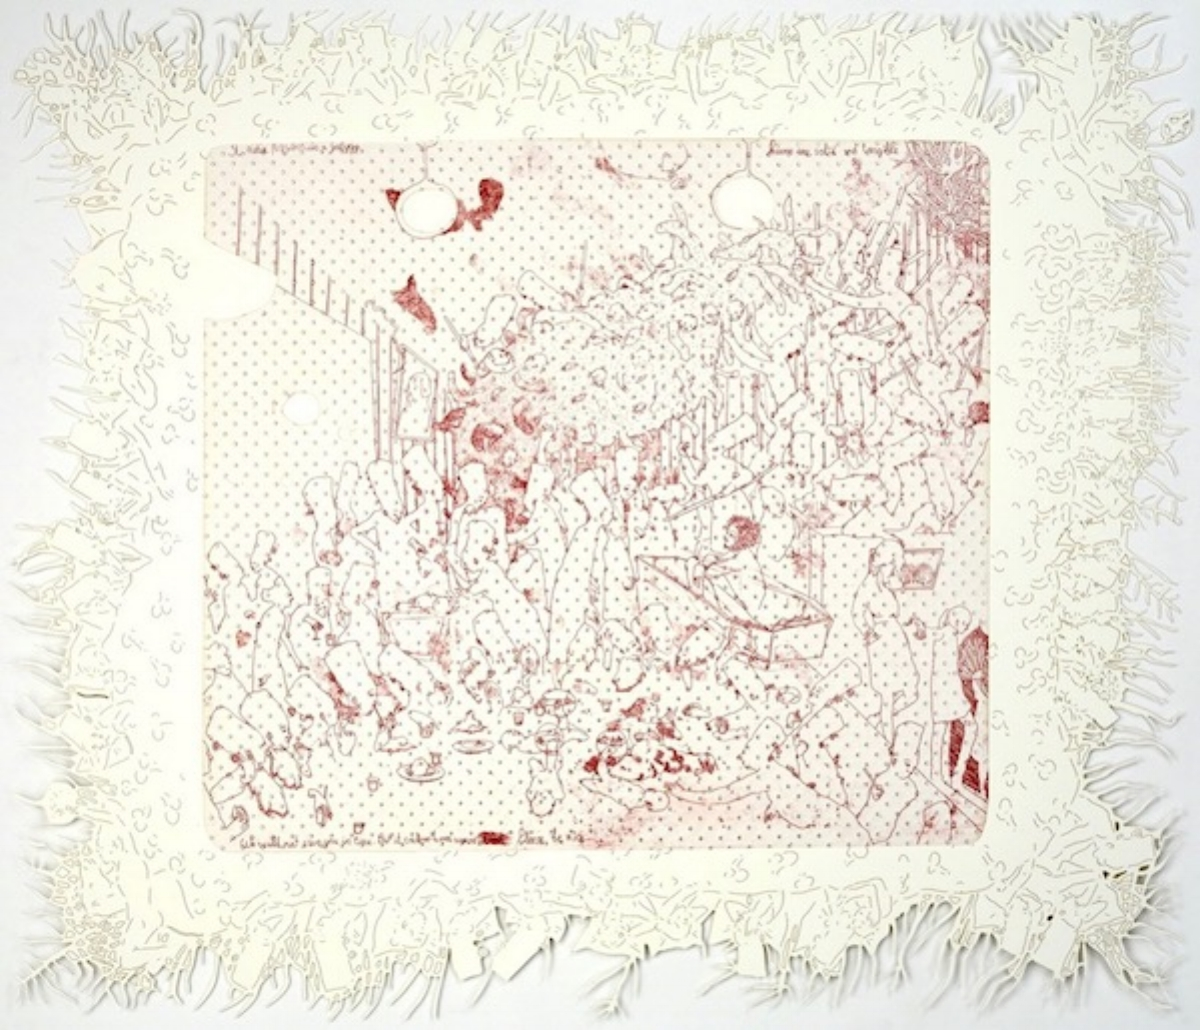 """Dasha Shiskin, I WANNA BE WELL II (DREAMS ARE SOLID AND TANGIBLE), 2007-2008, intaglio and engraving, 22"""" x 26"""" ed: 15"""